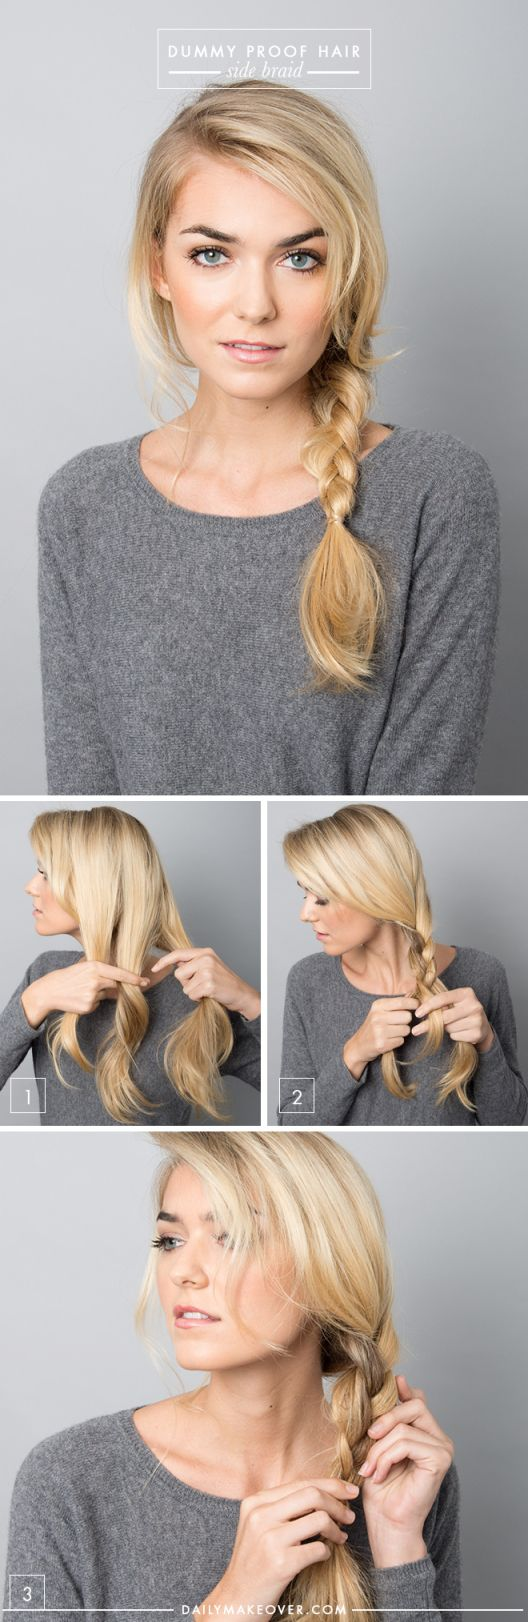 5 Dummy Proof Hairstyles That Everyone Can Master   | StyleCaster